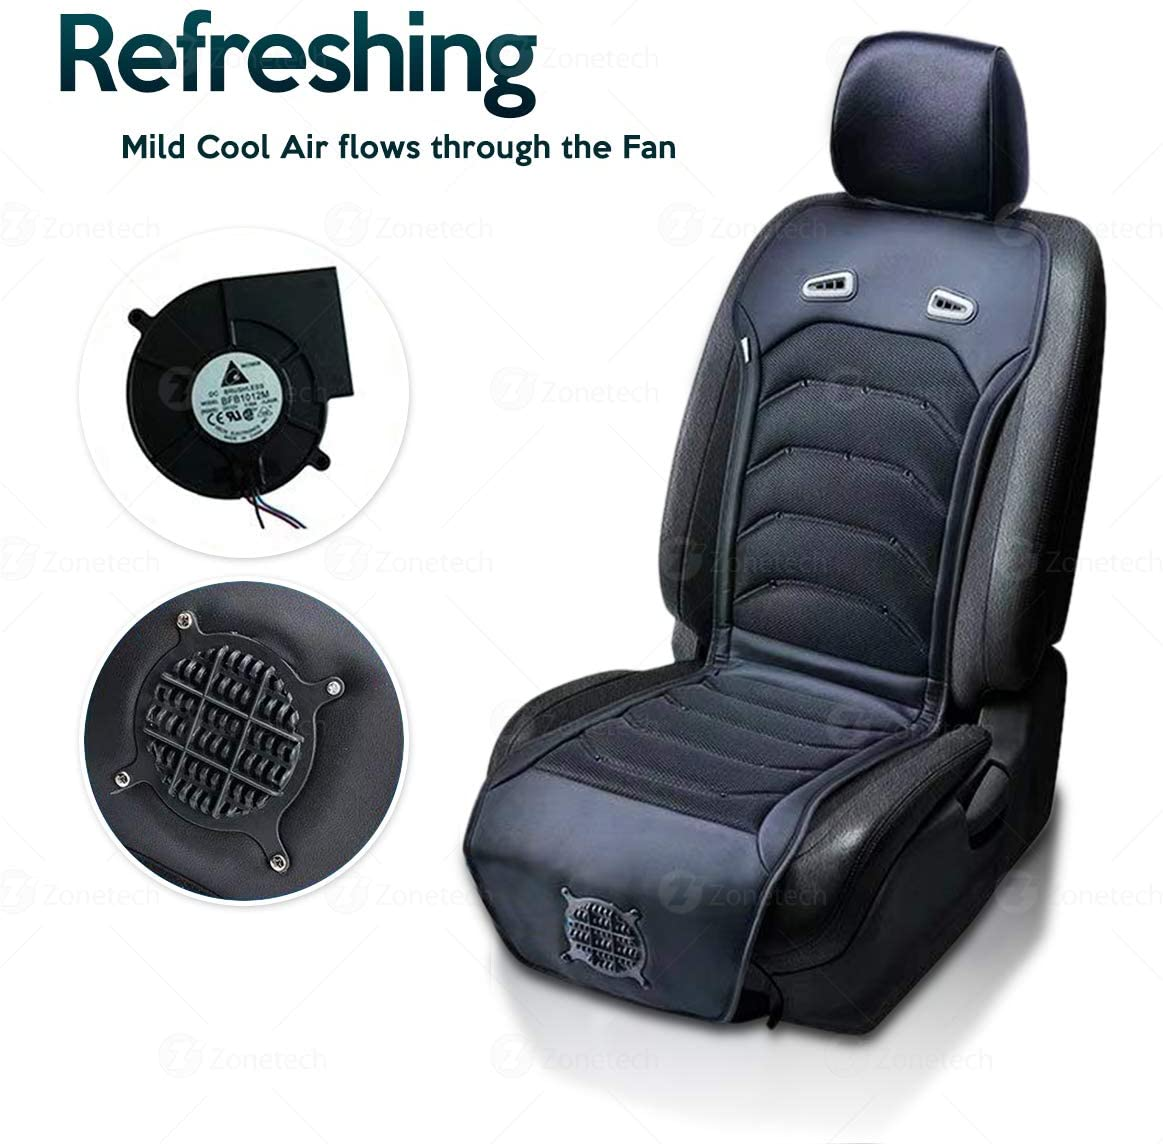 Car Seat Cooling Pad Air Conditioned Seat Cooler with Fan for Cars Home Office Massage Lumbar Support Cool Seat Cover Big Ant Cooling Car Seat Cushion Black-1PC